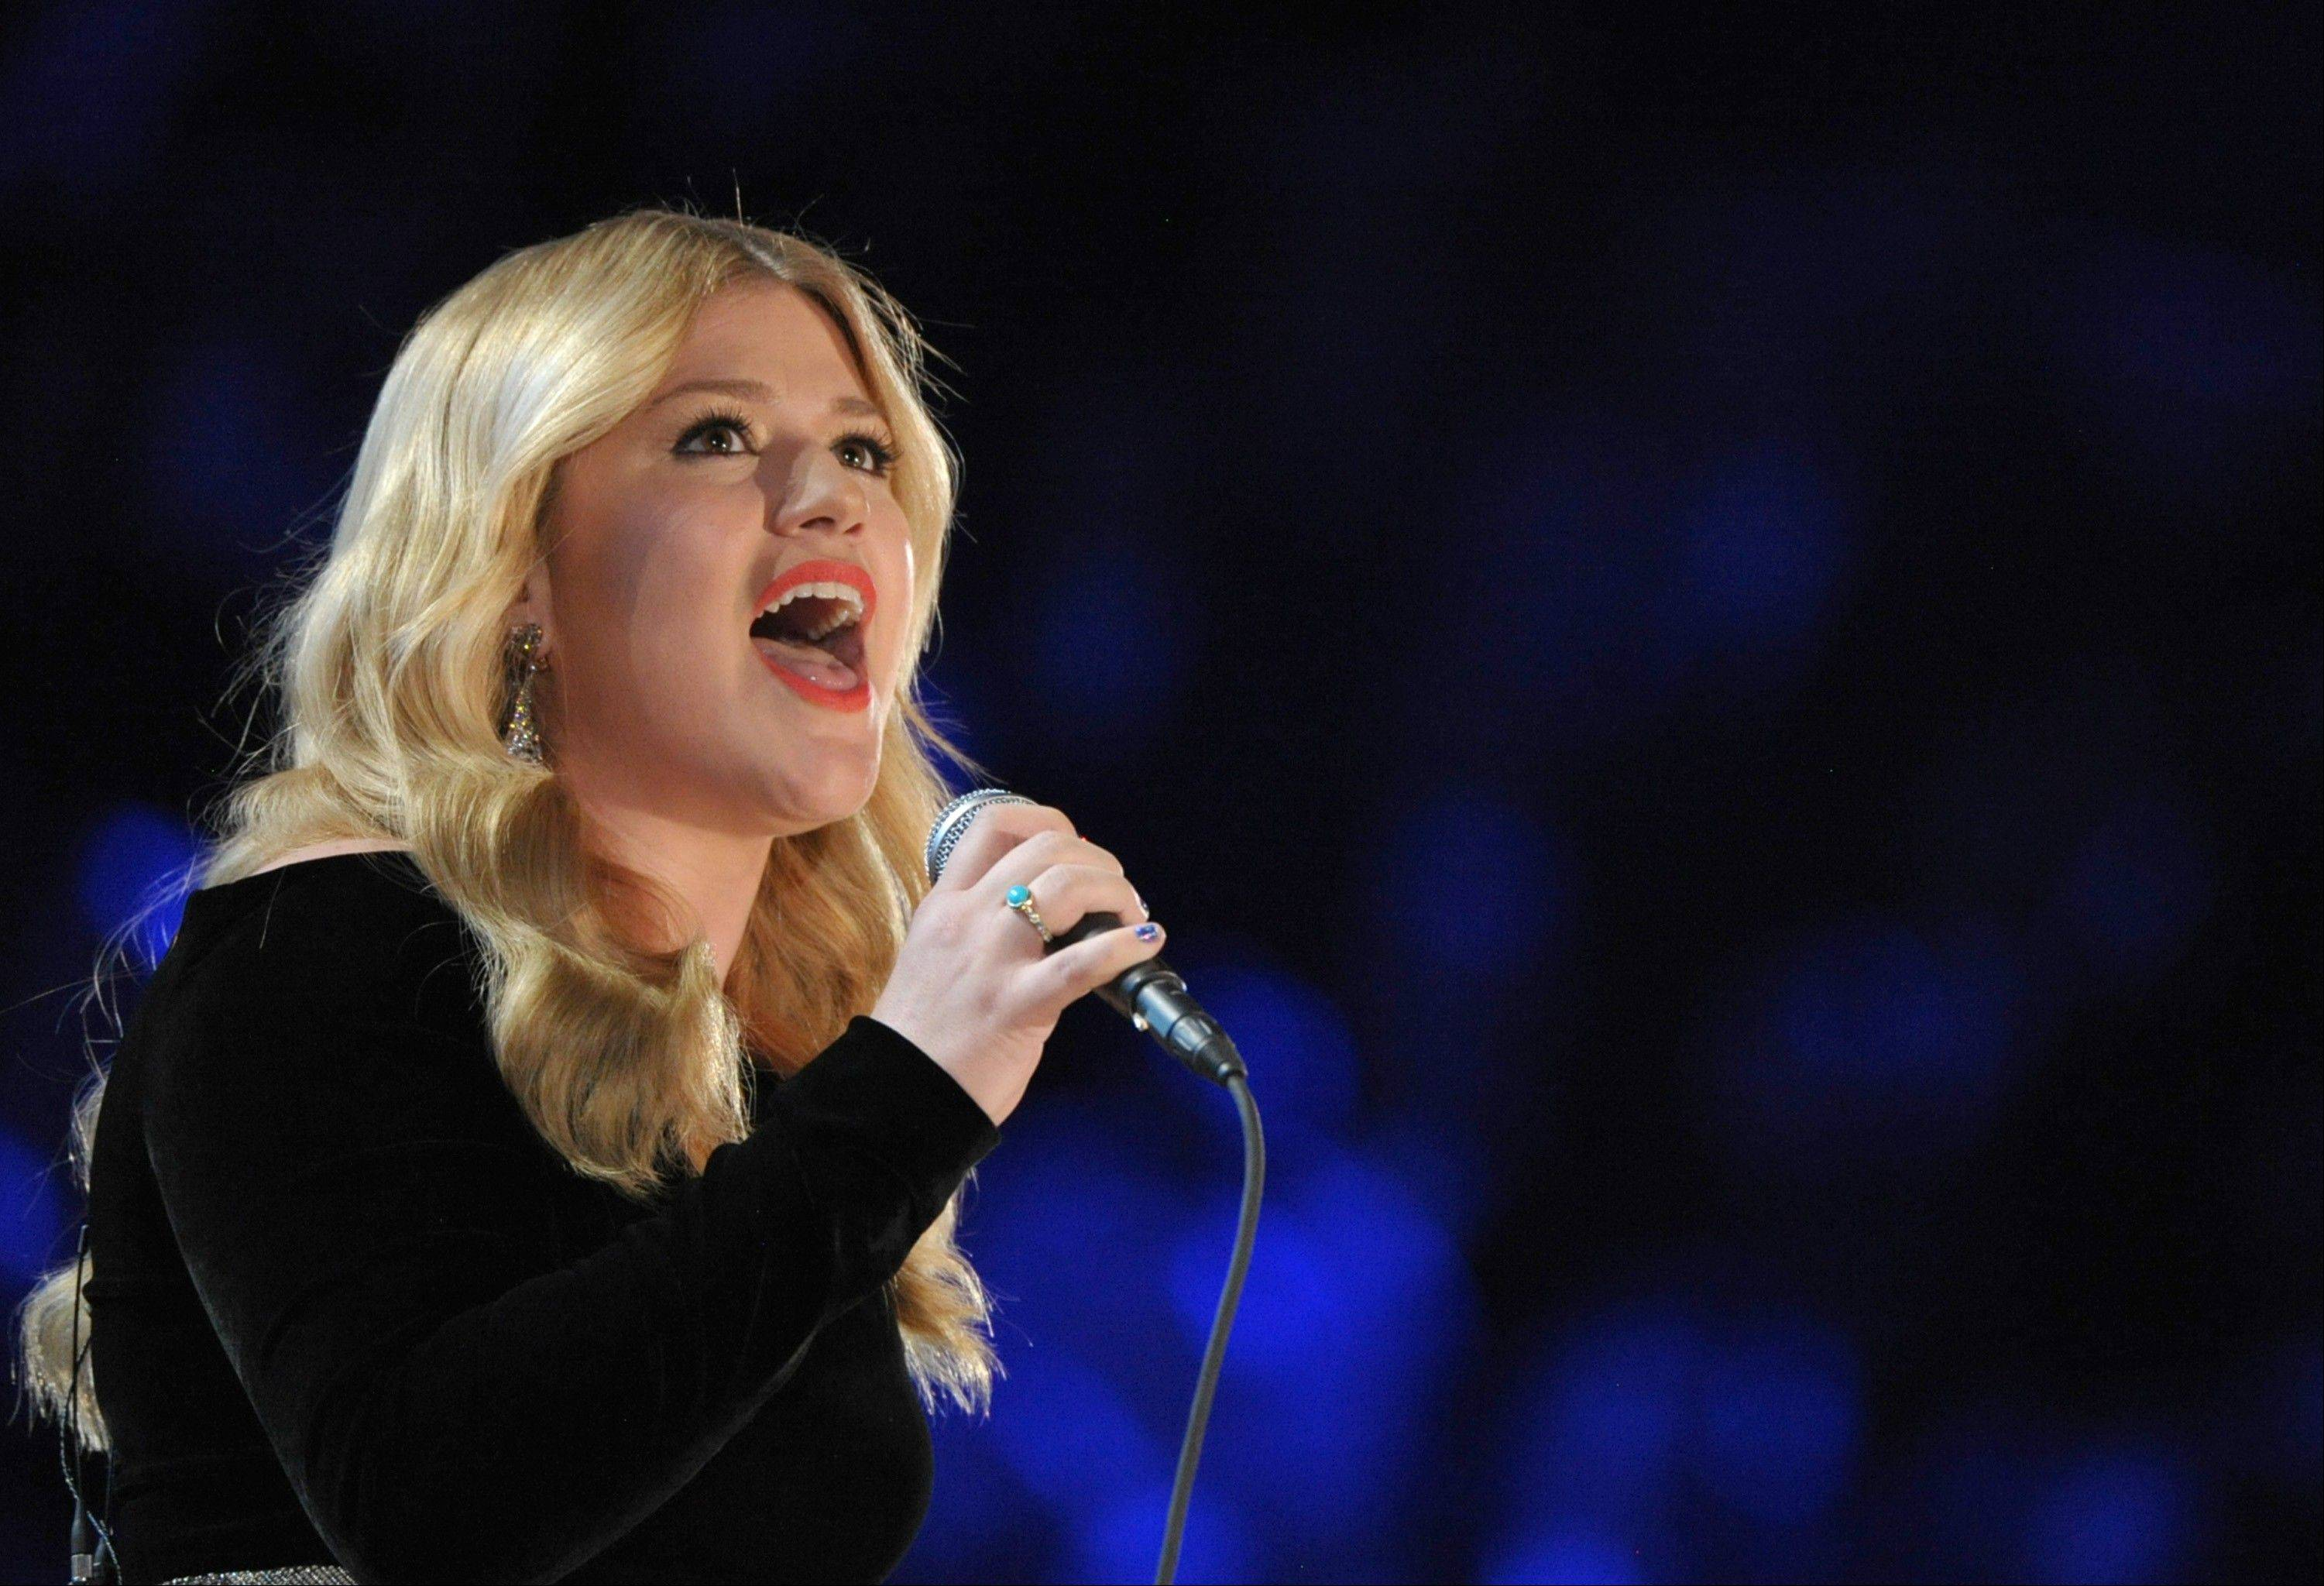 Kelly Clarkson will join co-hosts Blake Shelton and Luke Bryan in performing at this year's Academy of Country Music Awards.